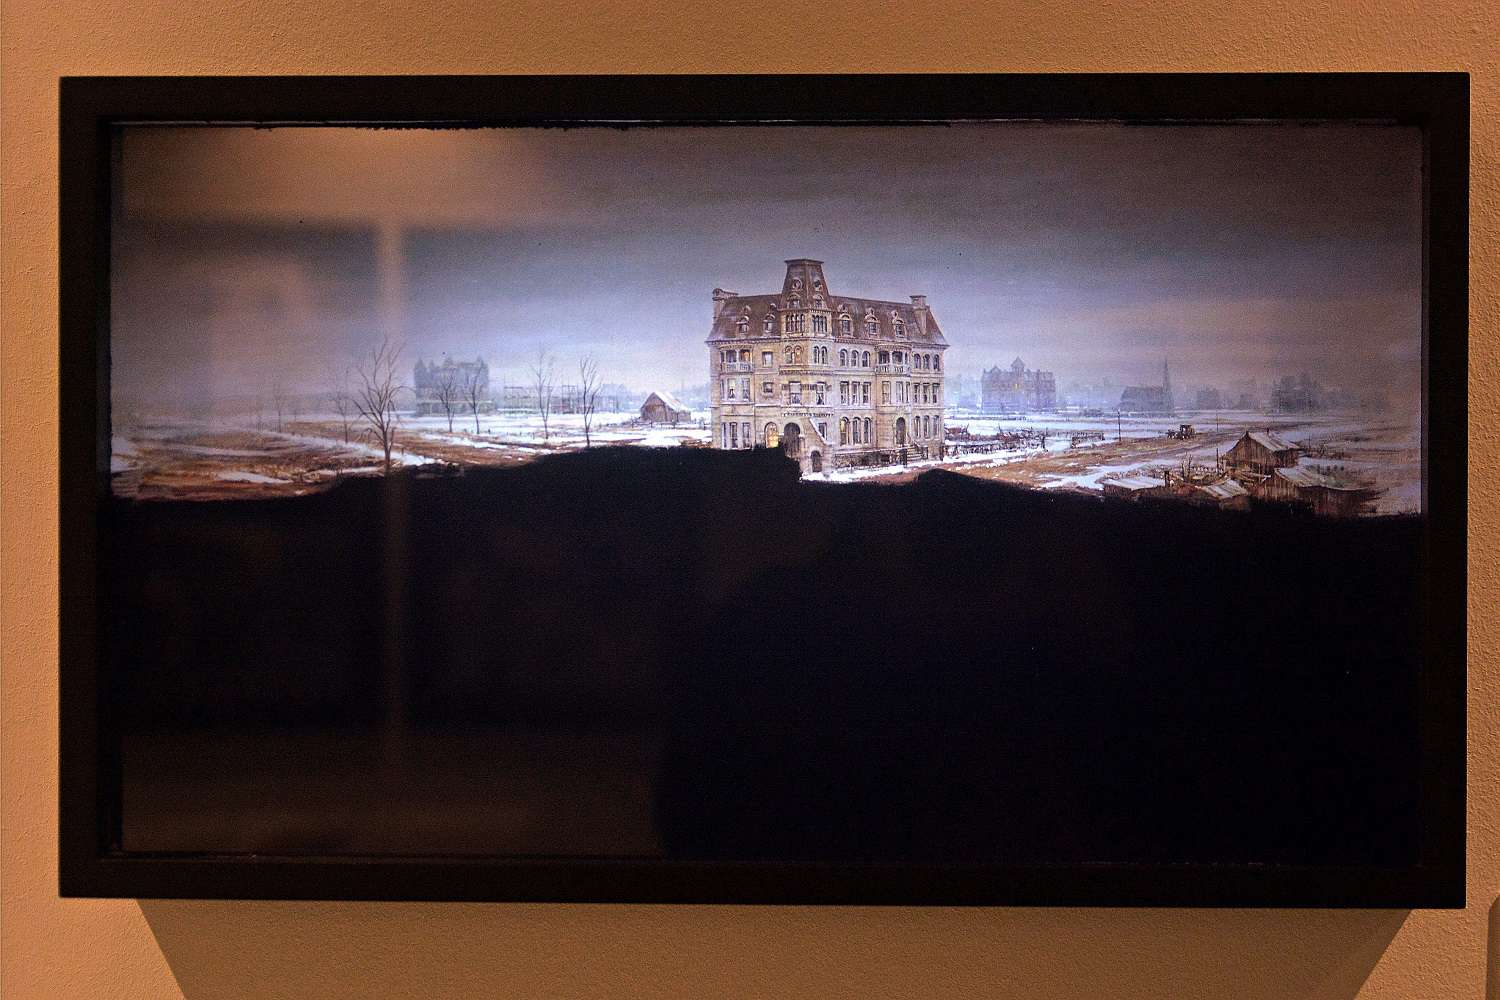 A matte painting used in Martin Scorsese's film Age of Innocence